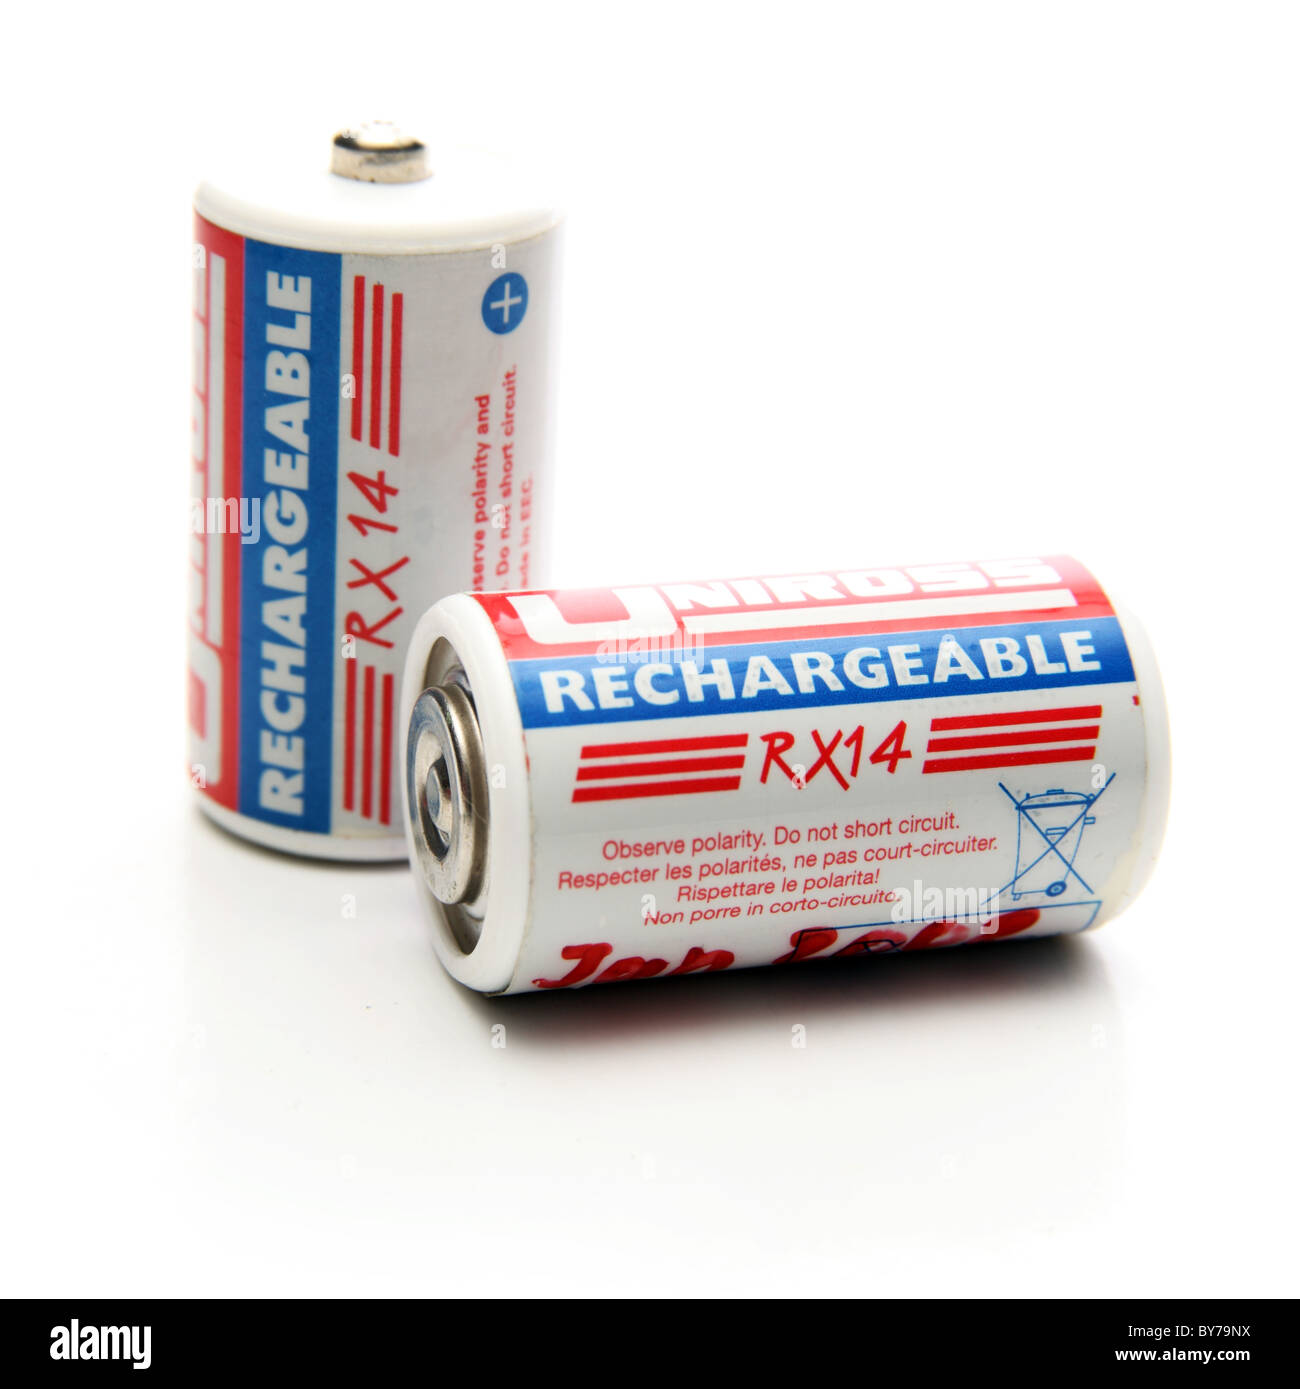 RX14 Rechargeable Batteries on White Background - Stock Image